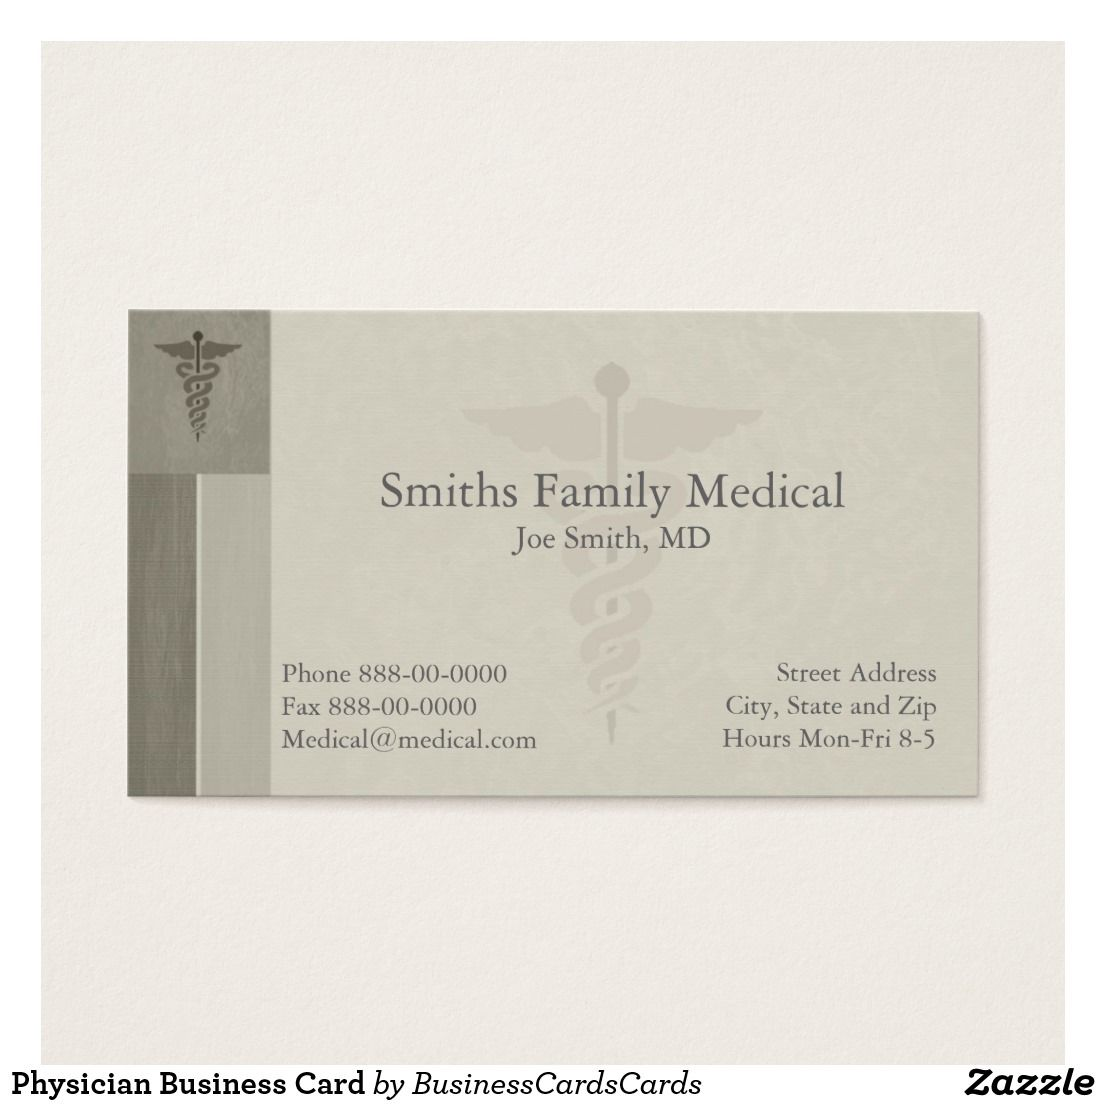 Physician Business Card | Pinterest | Business cards and Business